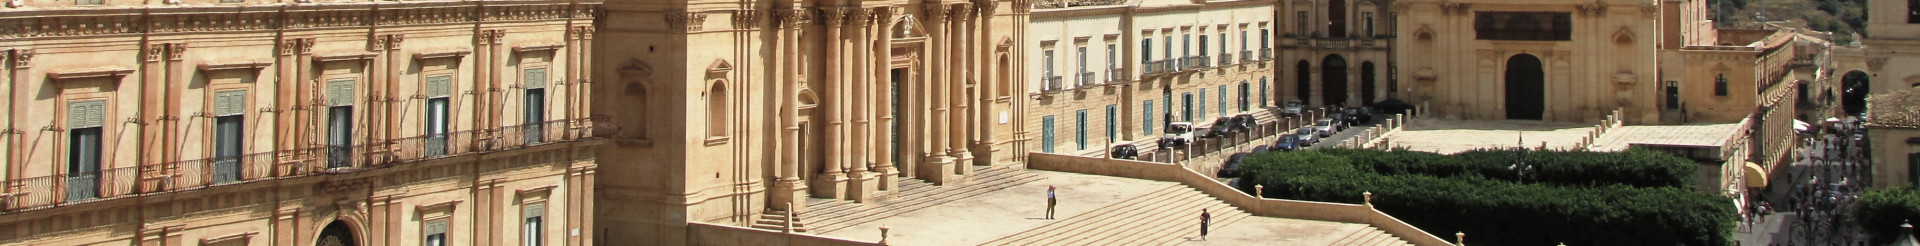 Basilica_Cattedrale_San_Nicoló-Noto (1)